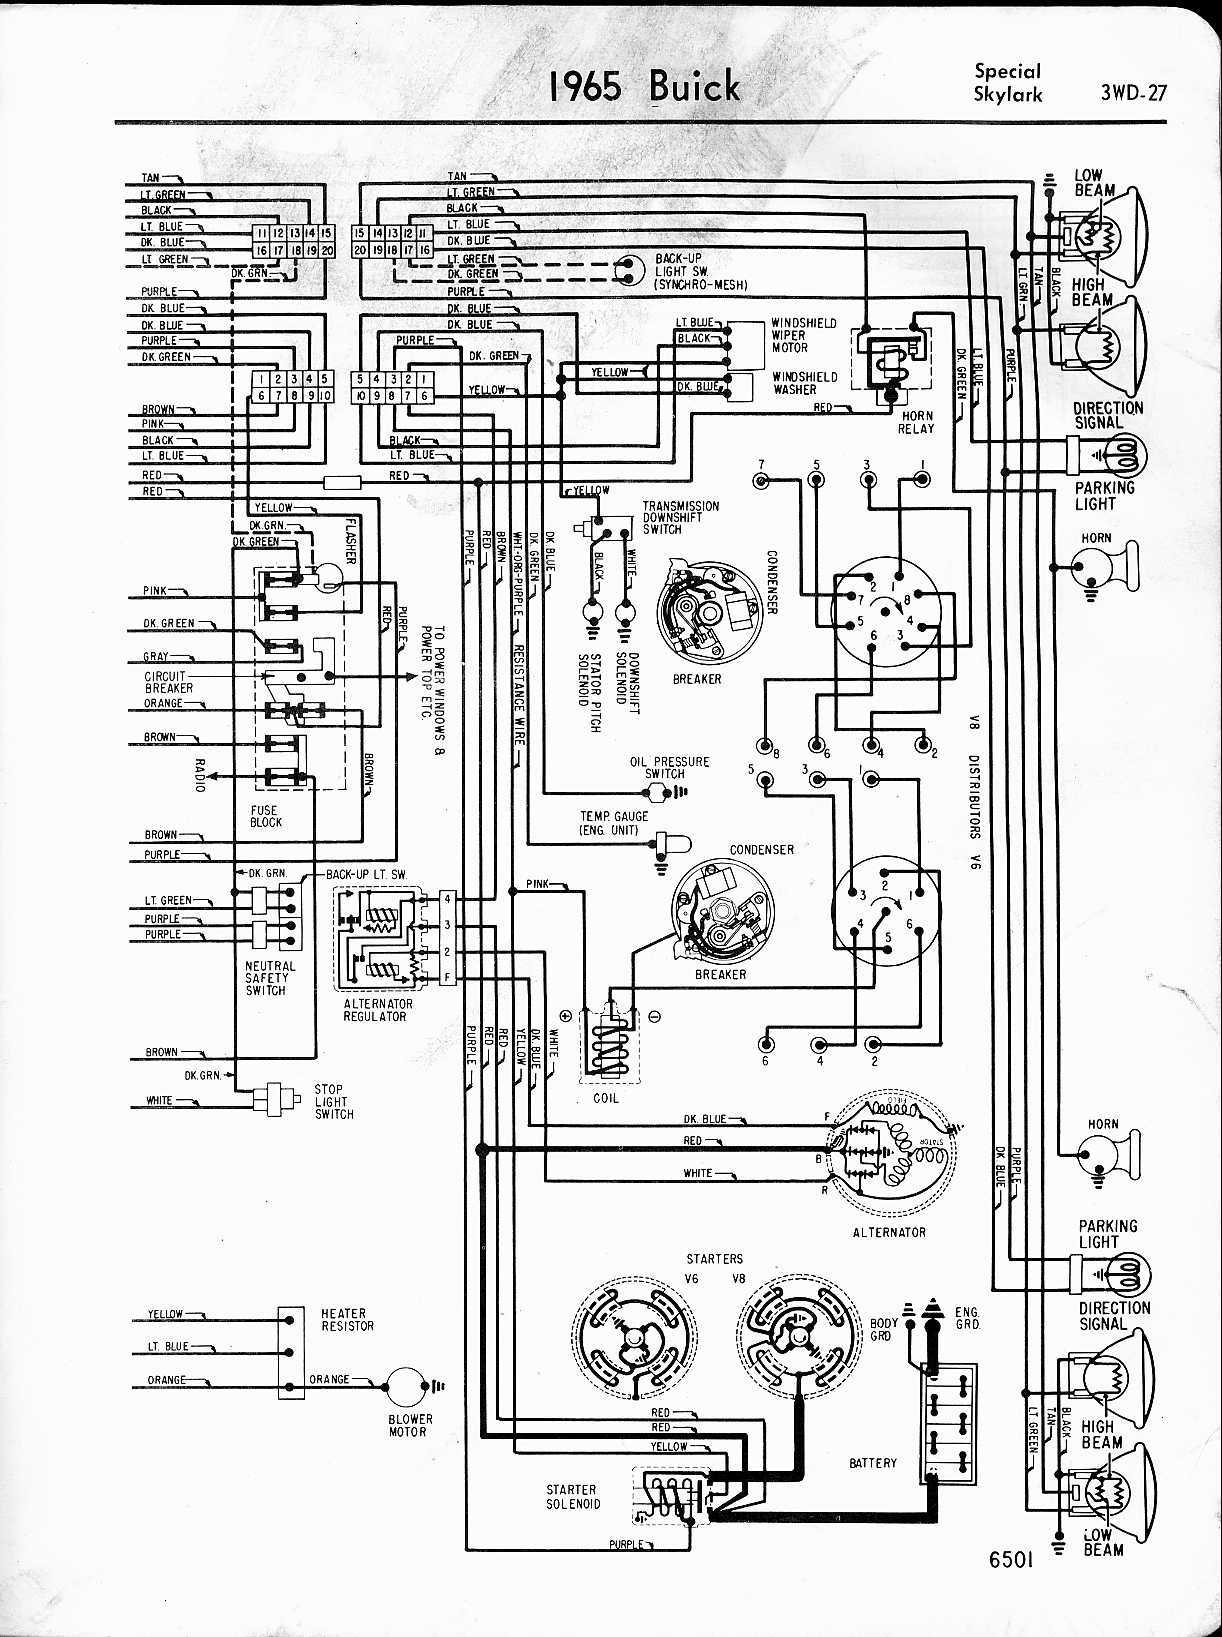 1997 Buick Lesabre Fuse Box Diagram Wiring Library 1994 Location